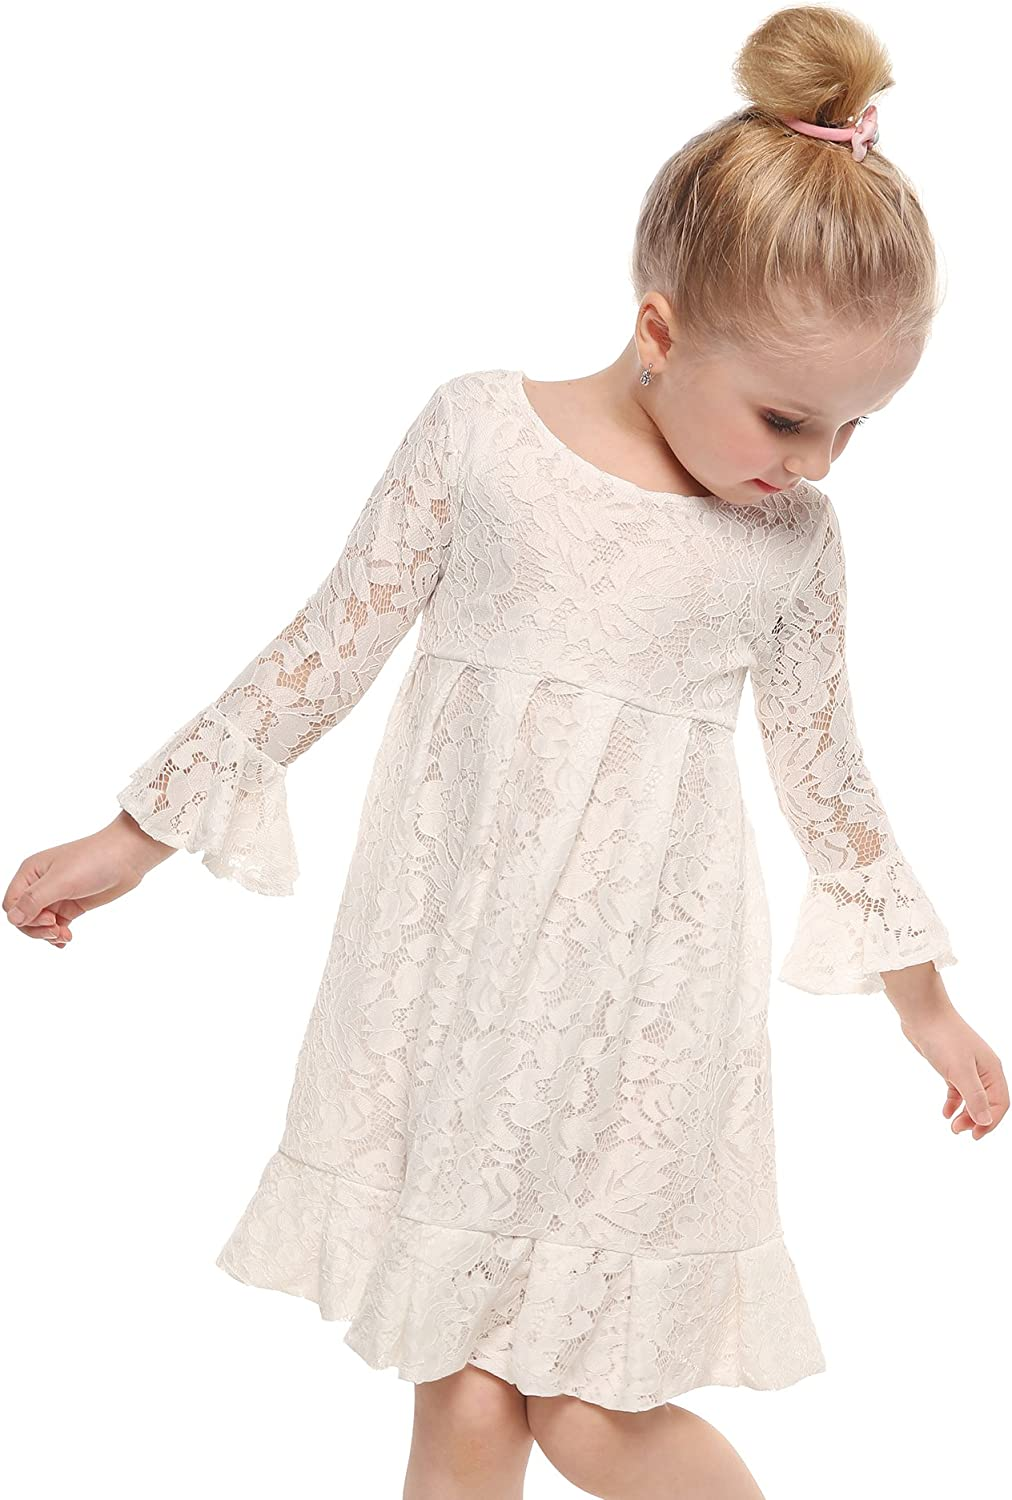 Arshiner Lace Flower Girl Maxi Dress Long Sleeve Wedding Party Princess Boho Gowns 817j%2BQ7XGRL